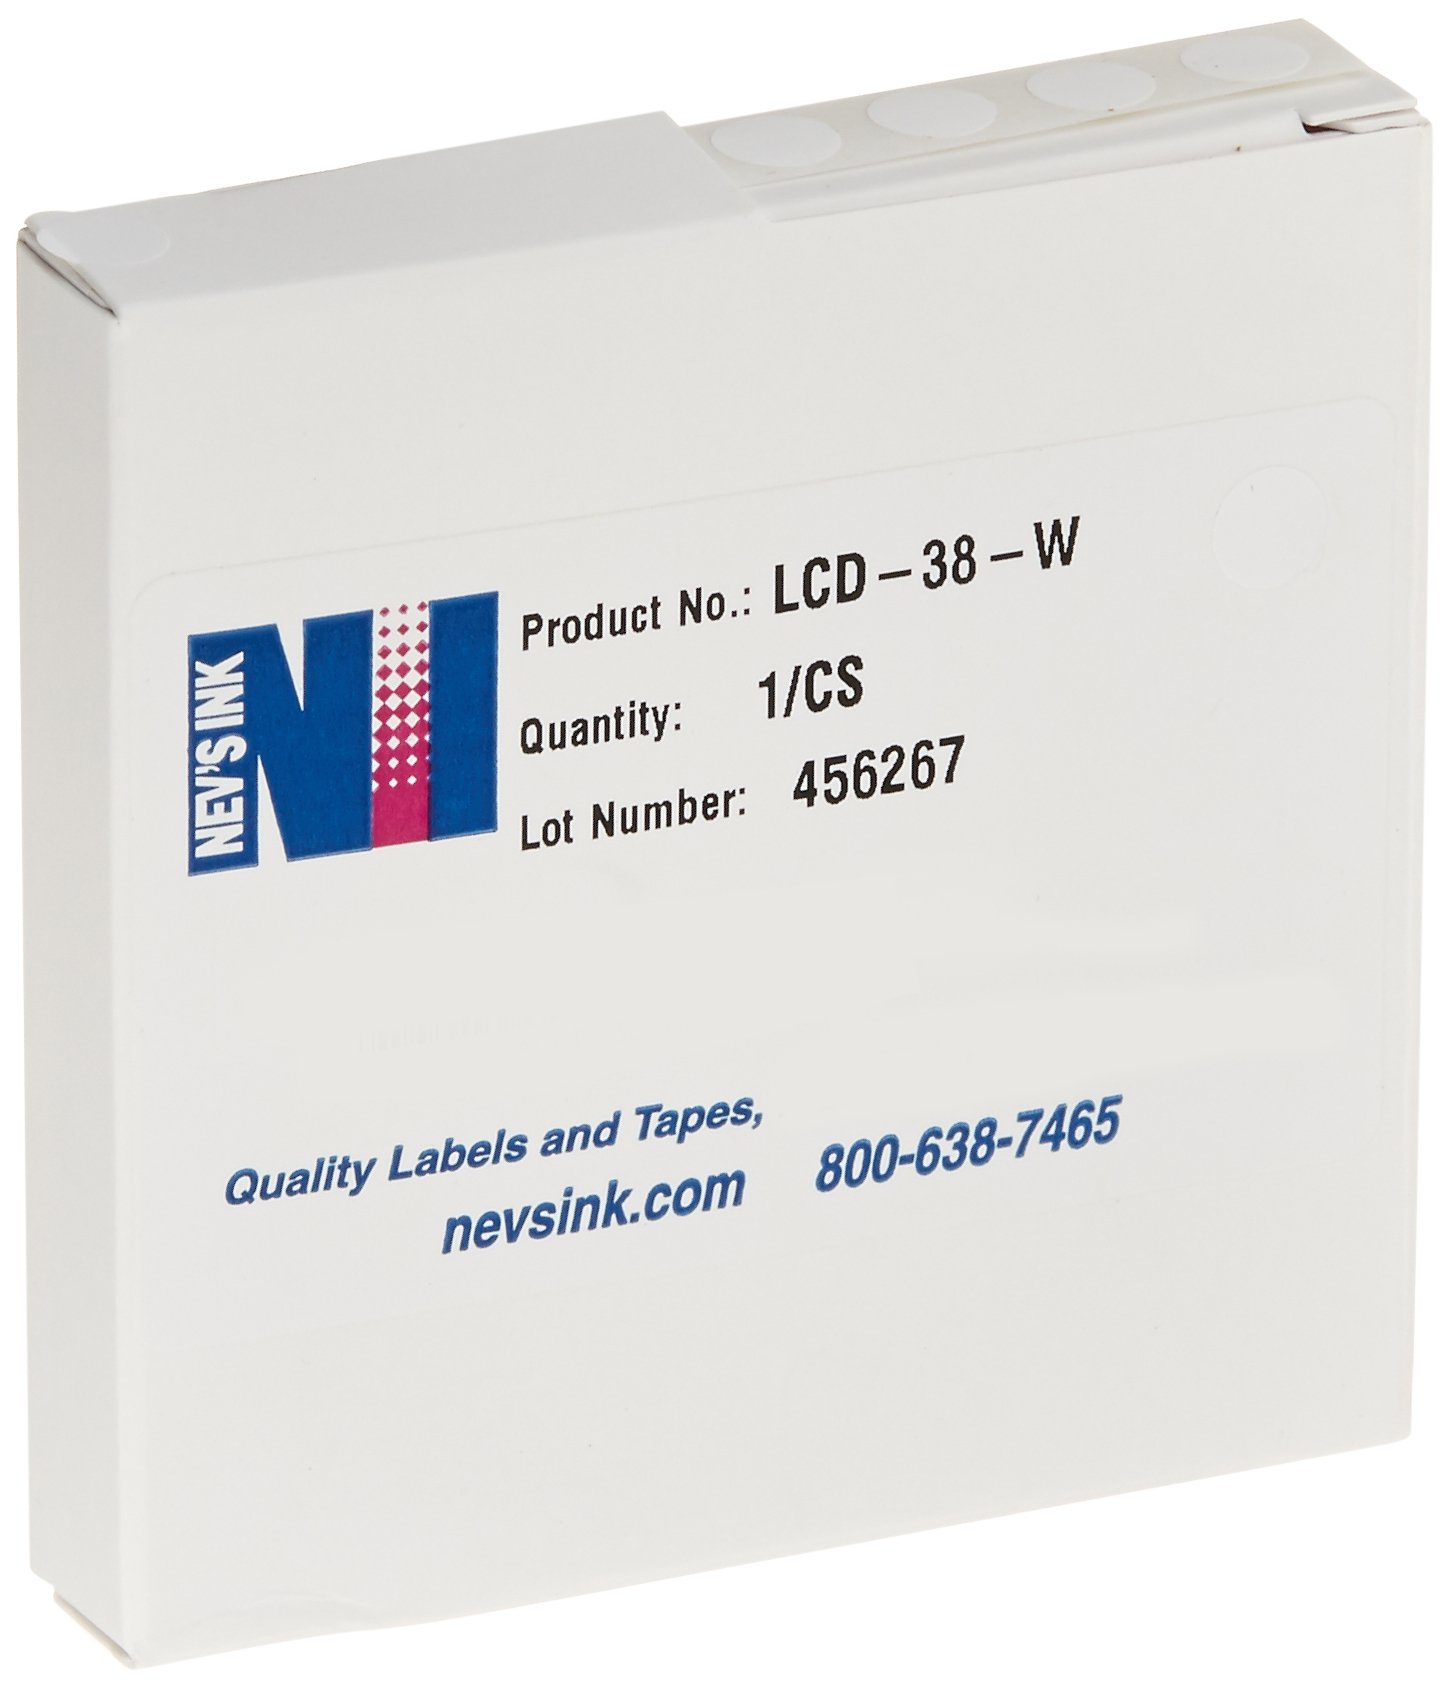 Nev's Ink LCD-38-W Lab Cryogenic Dot Circle Label, 3/8'' Diameter, White (Roll of 1000) by Nev's Ink, Inc (Image #1)